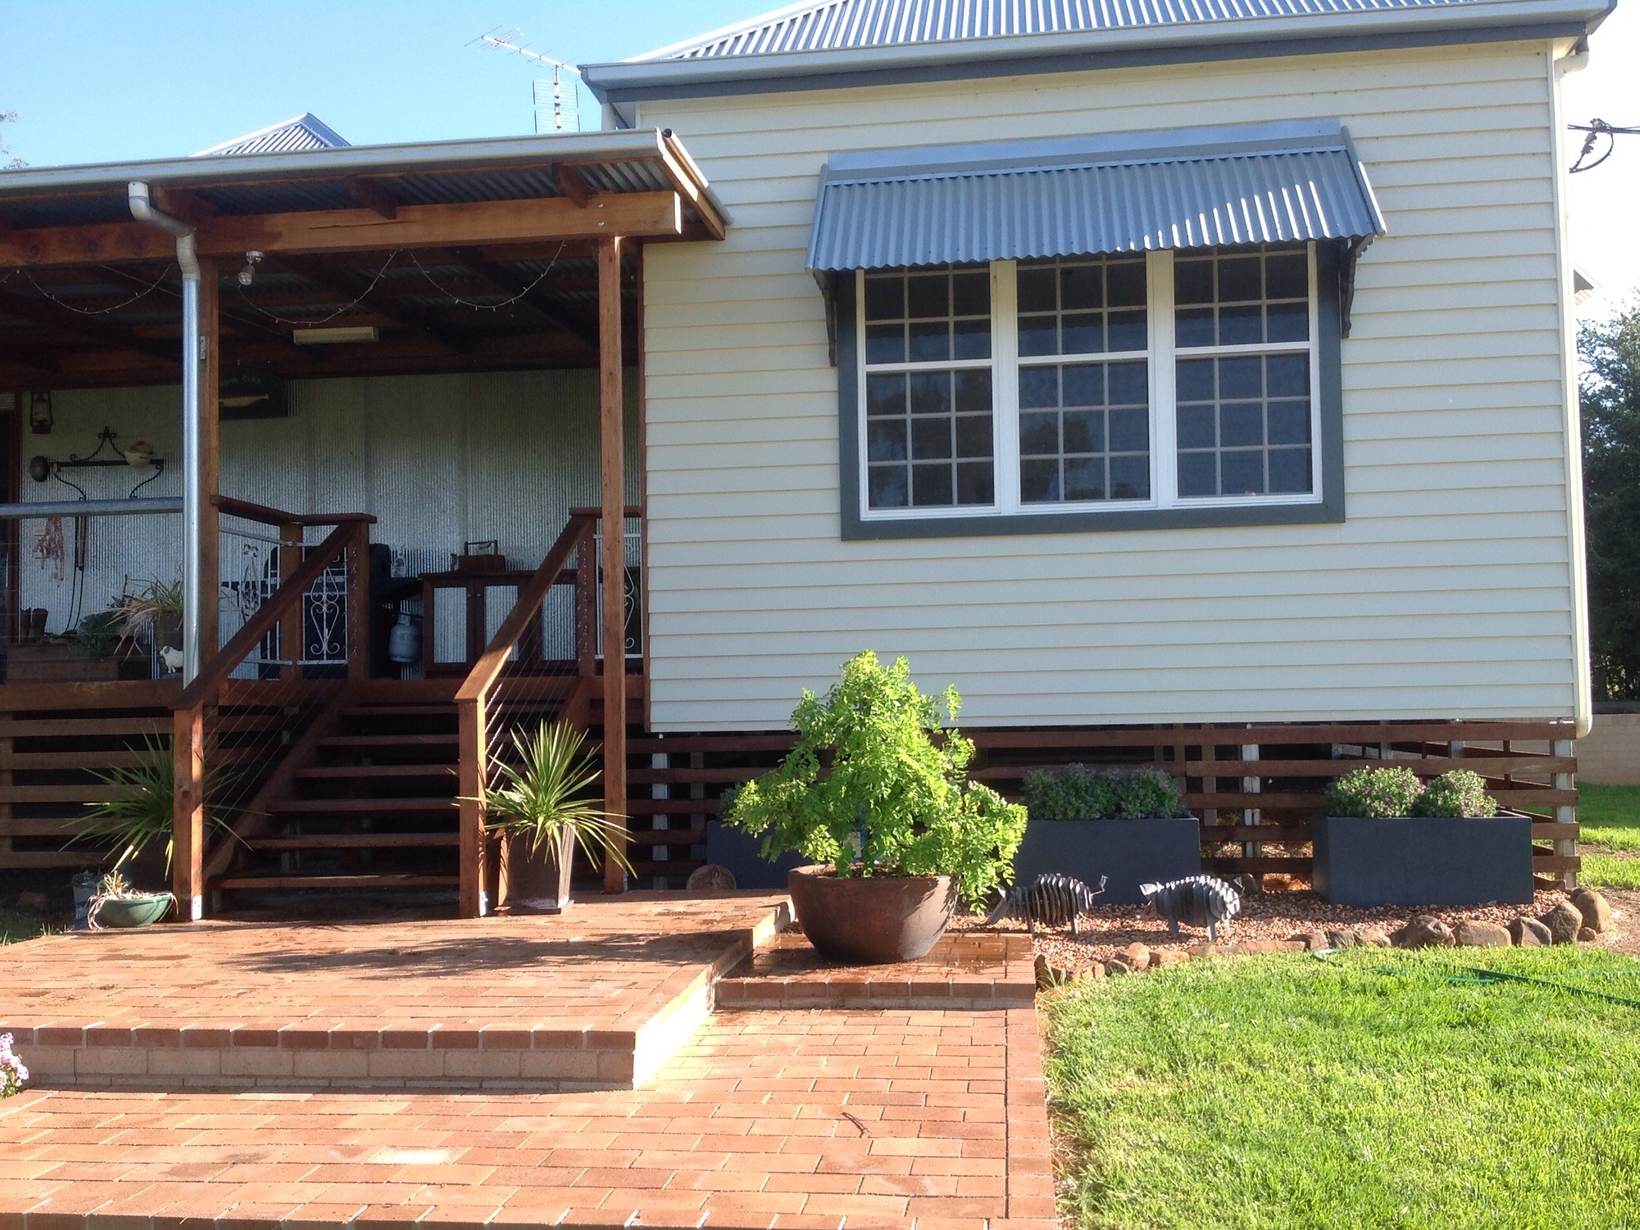 Susan & Andrew from Inverell, New South Wales, Australia